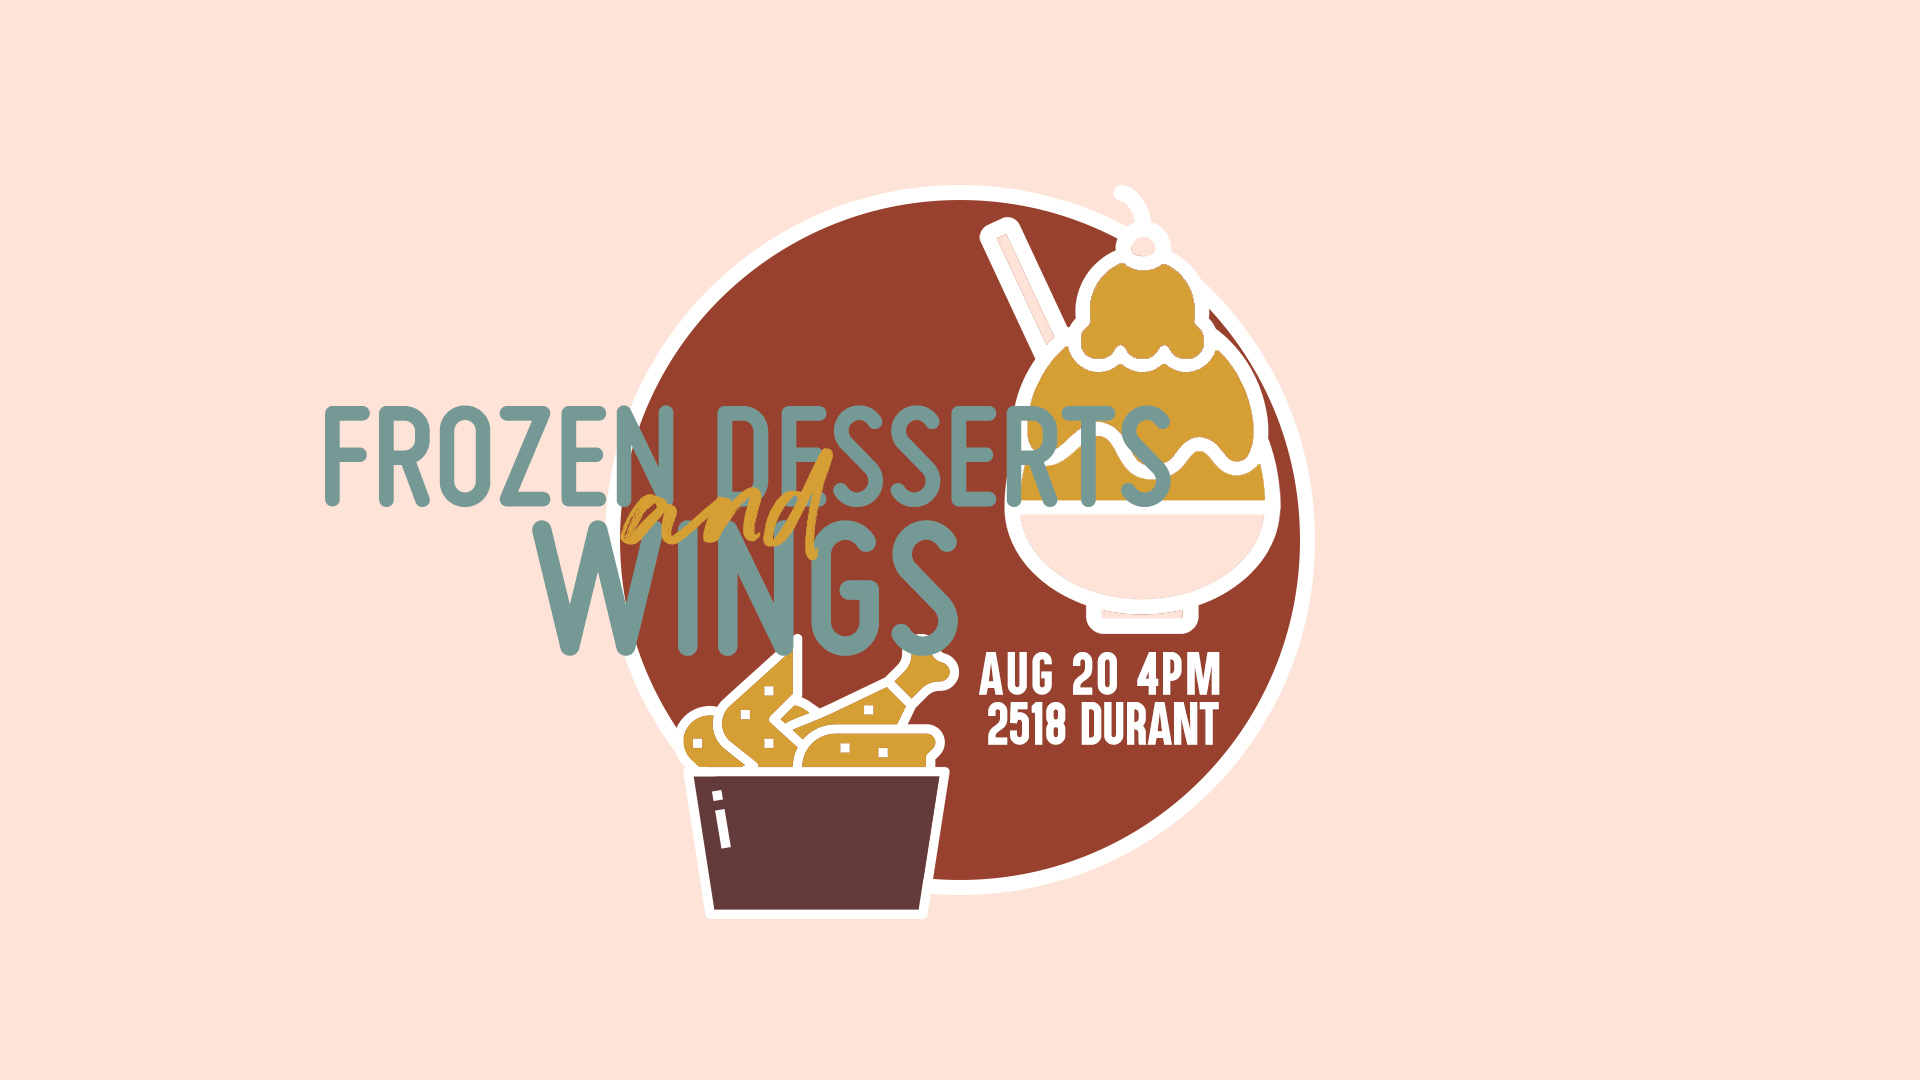 UC Berkeley college student fellowship group on campus event - frozen dessert and wings